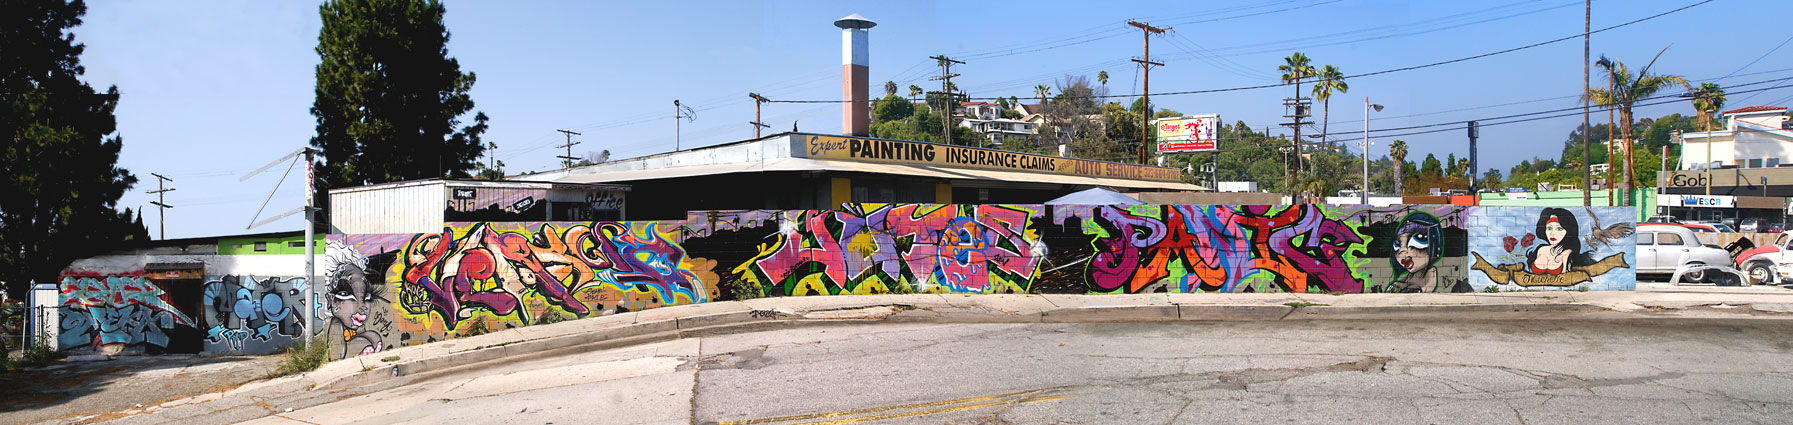 Elliott Place, Los Angeles, 2011